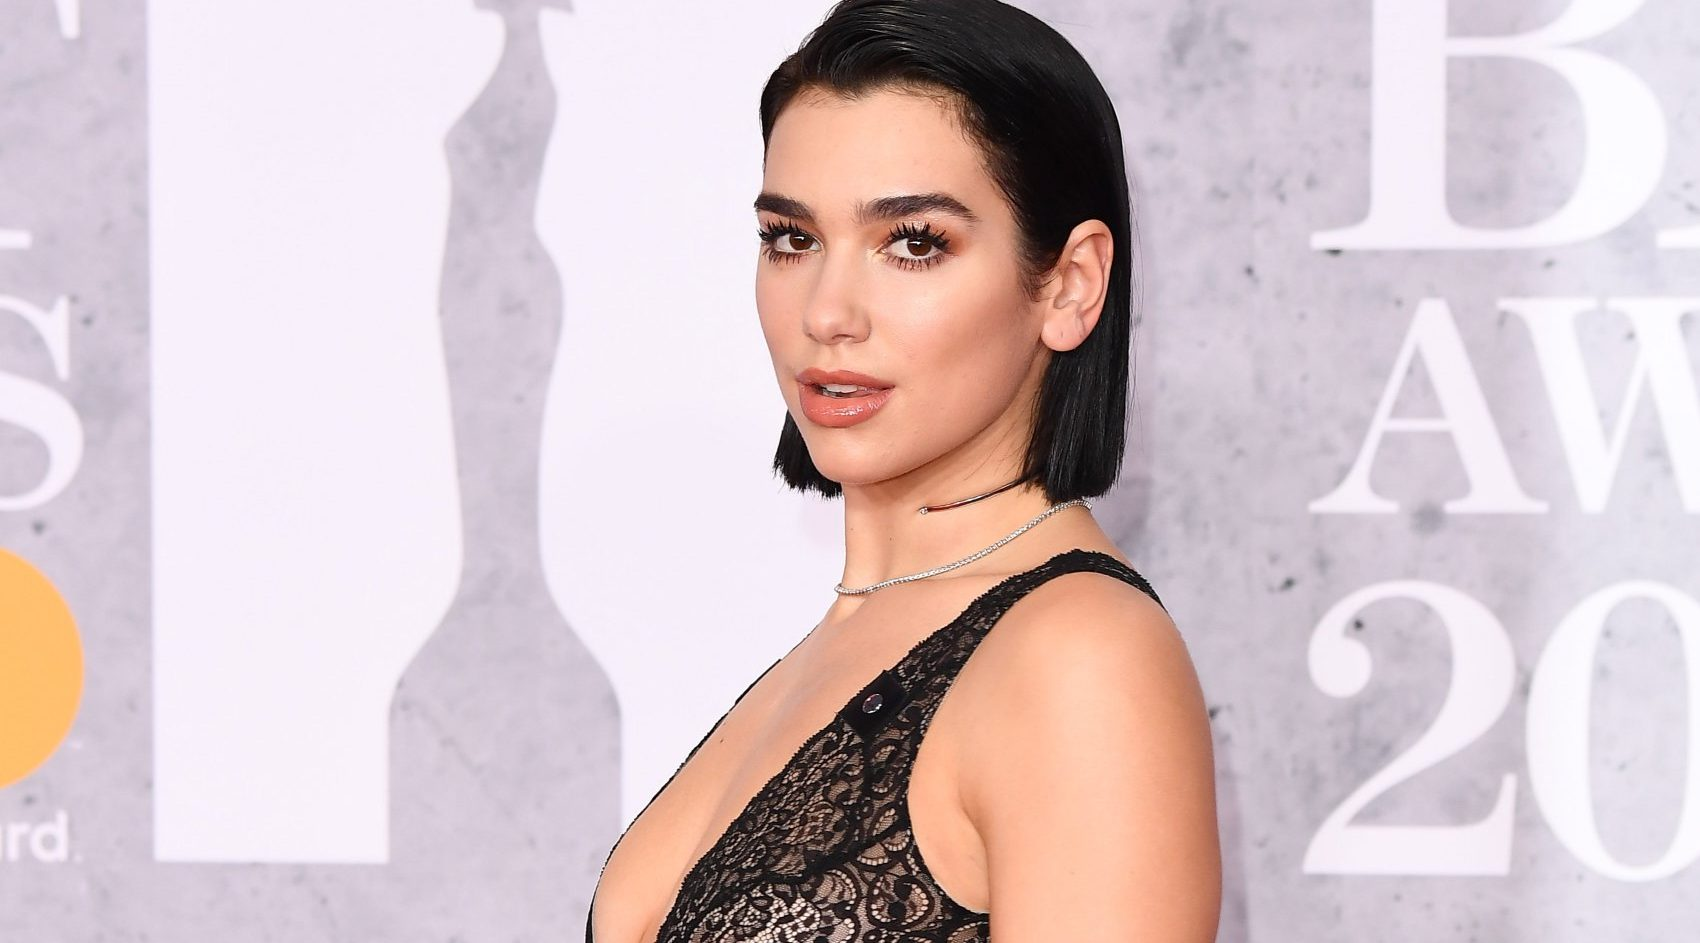 Katy Perry warned Dua Lipa to never search her name online